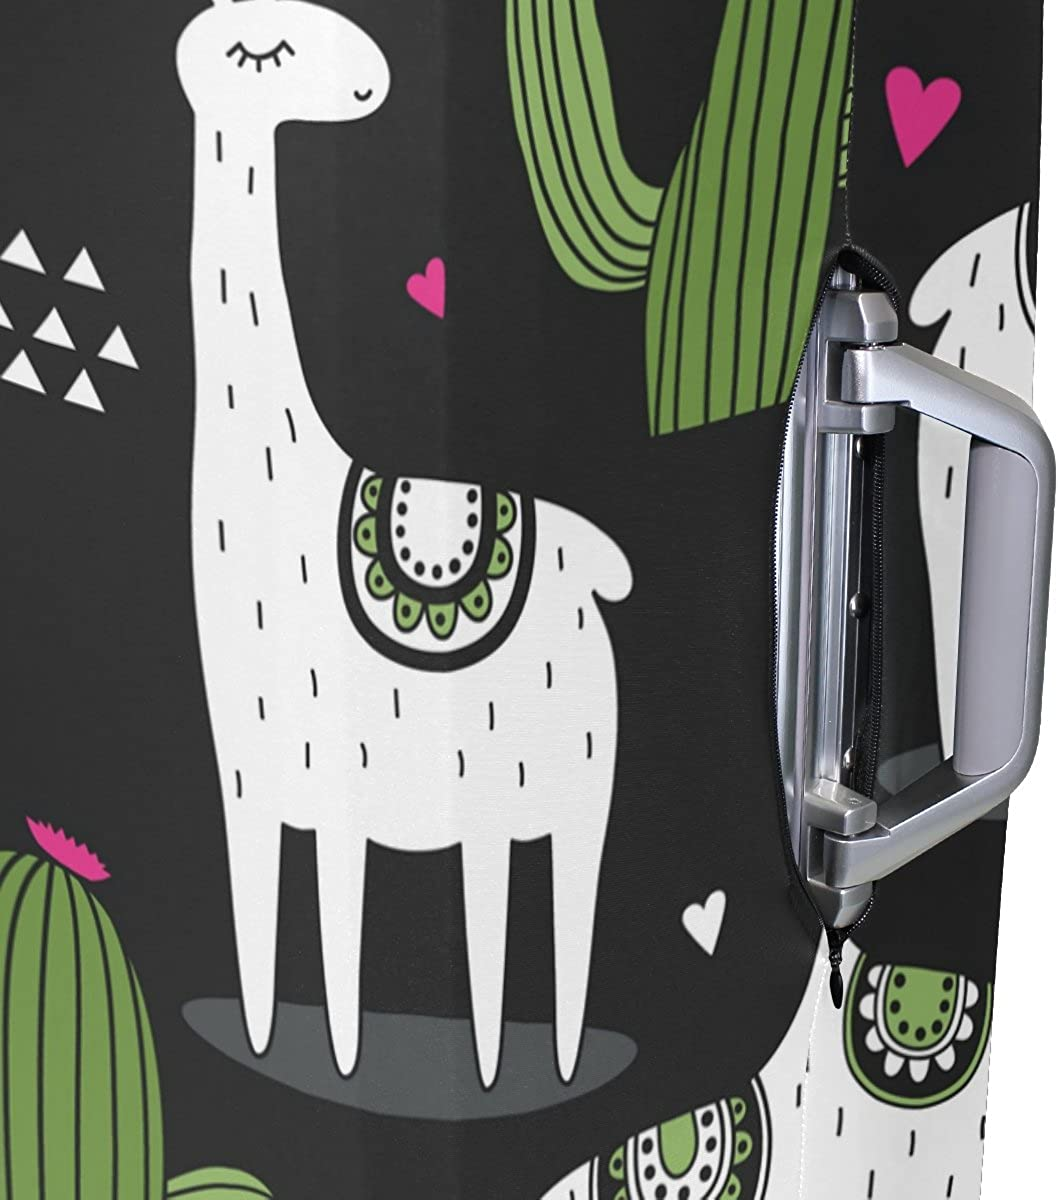 Elastic Travel Luggage Cover Alpaca Cactus Suitcase Protector for 18-20 Inch Luggage